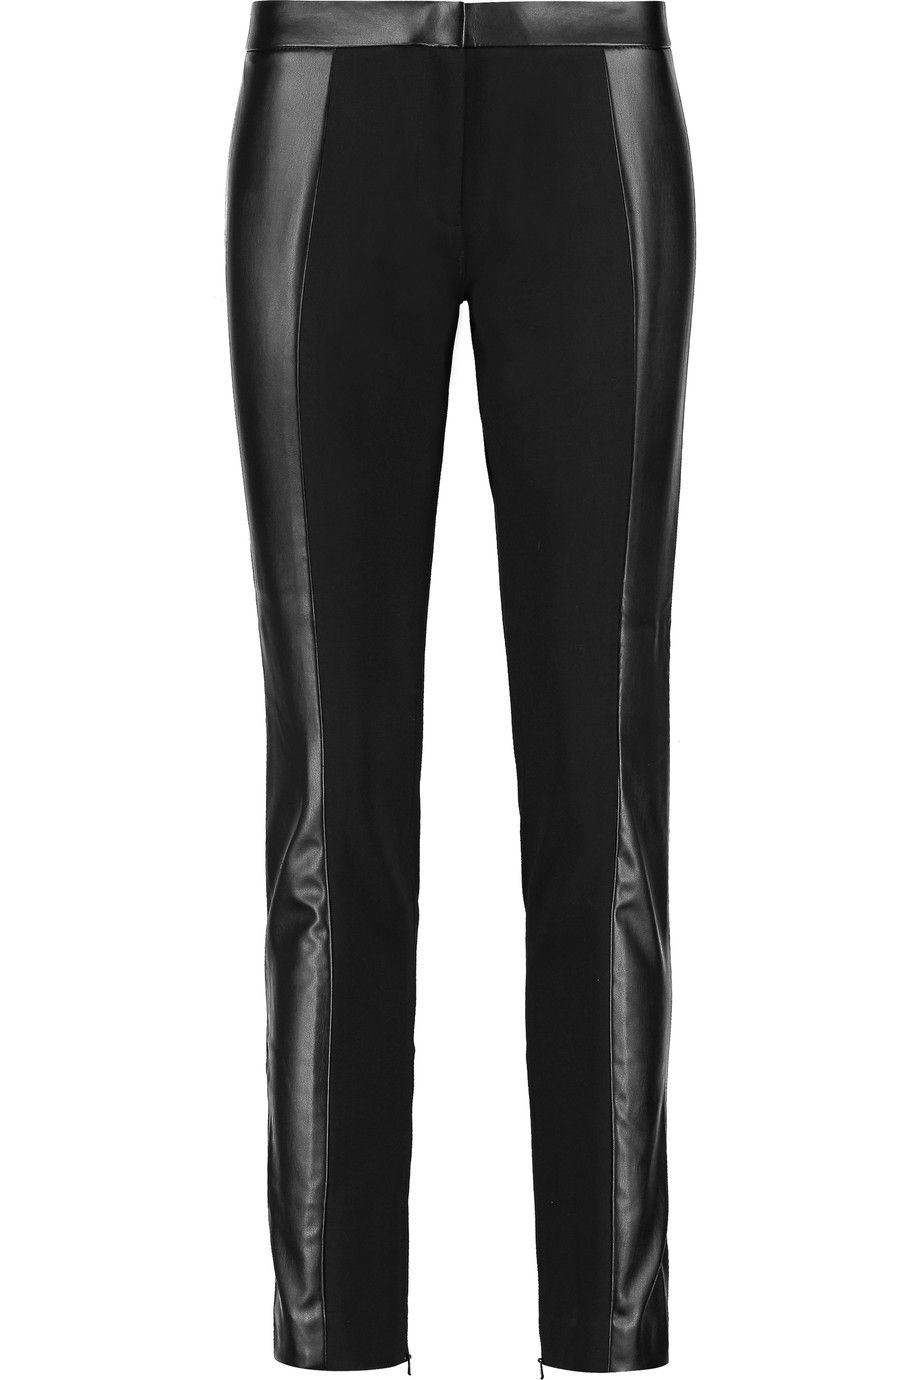 TORY BURCH Mabley faux leather and stretch-jersey slim-leg pants. #toryburch